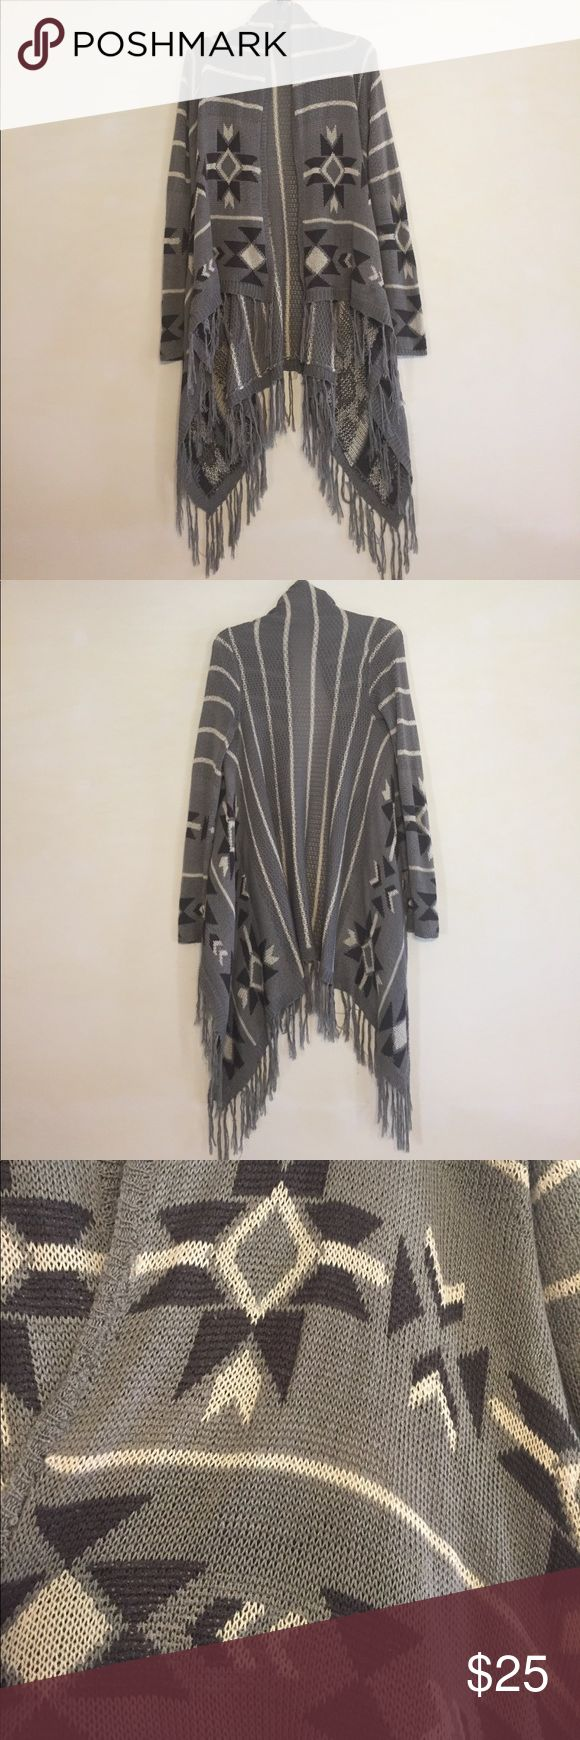 Full Tilt Gray, White & Black Tribal Cardigan, M This super cute Full Tilt Gray, White & Black Tribal Cardigan, M is great to wear during those cooler summer evenings around the fire with friends! In good condition, no defects and comes from a smoke/pet free home. Full Tilt Sweaters Cardigans